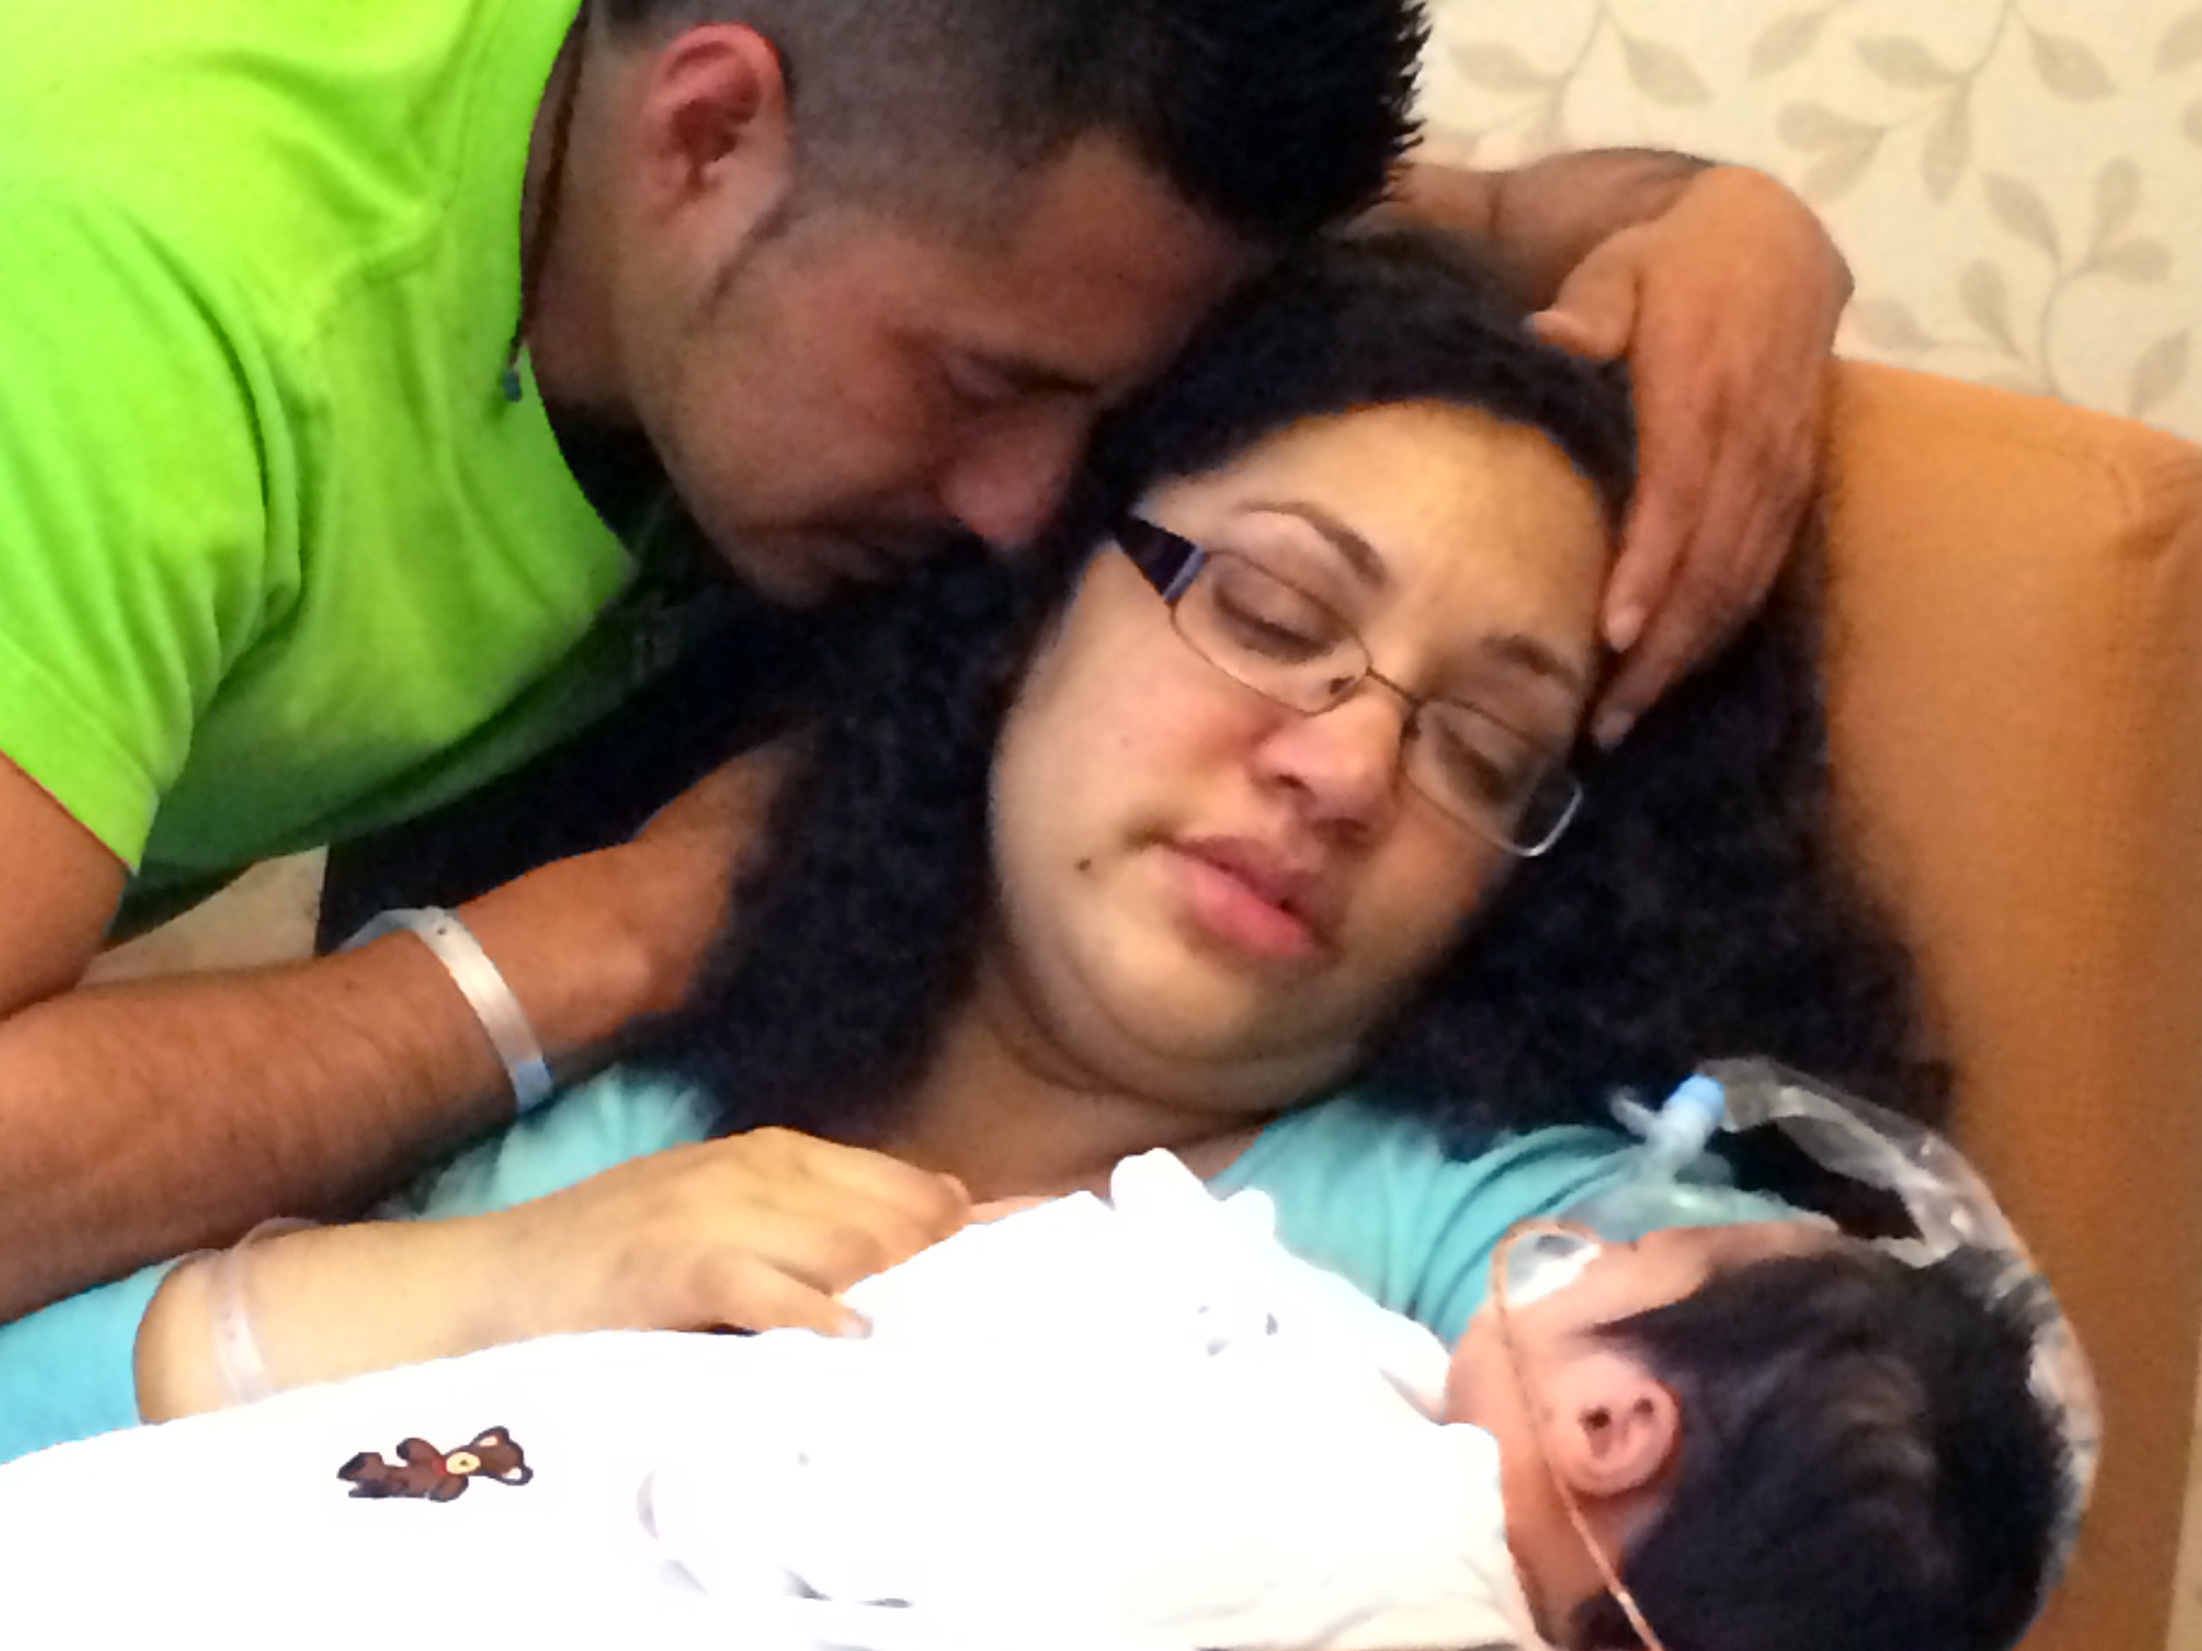 Heather Lavender had a history of troubled pregnancies: several miscarriages and the birth and death of a son at 18 weeks. (Photo via Heather Lavender)